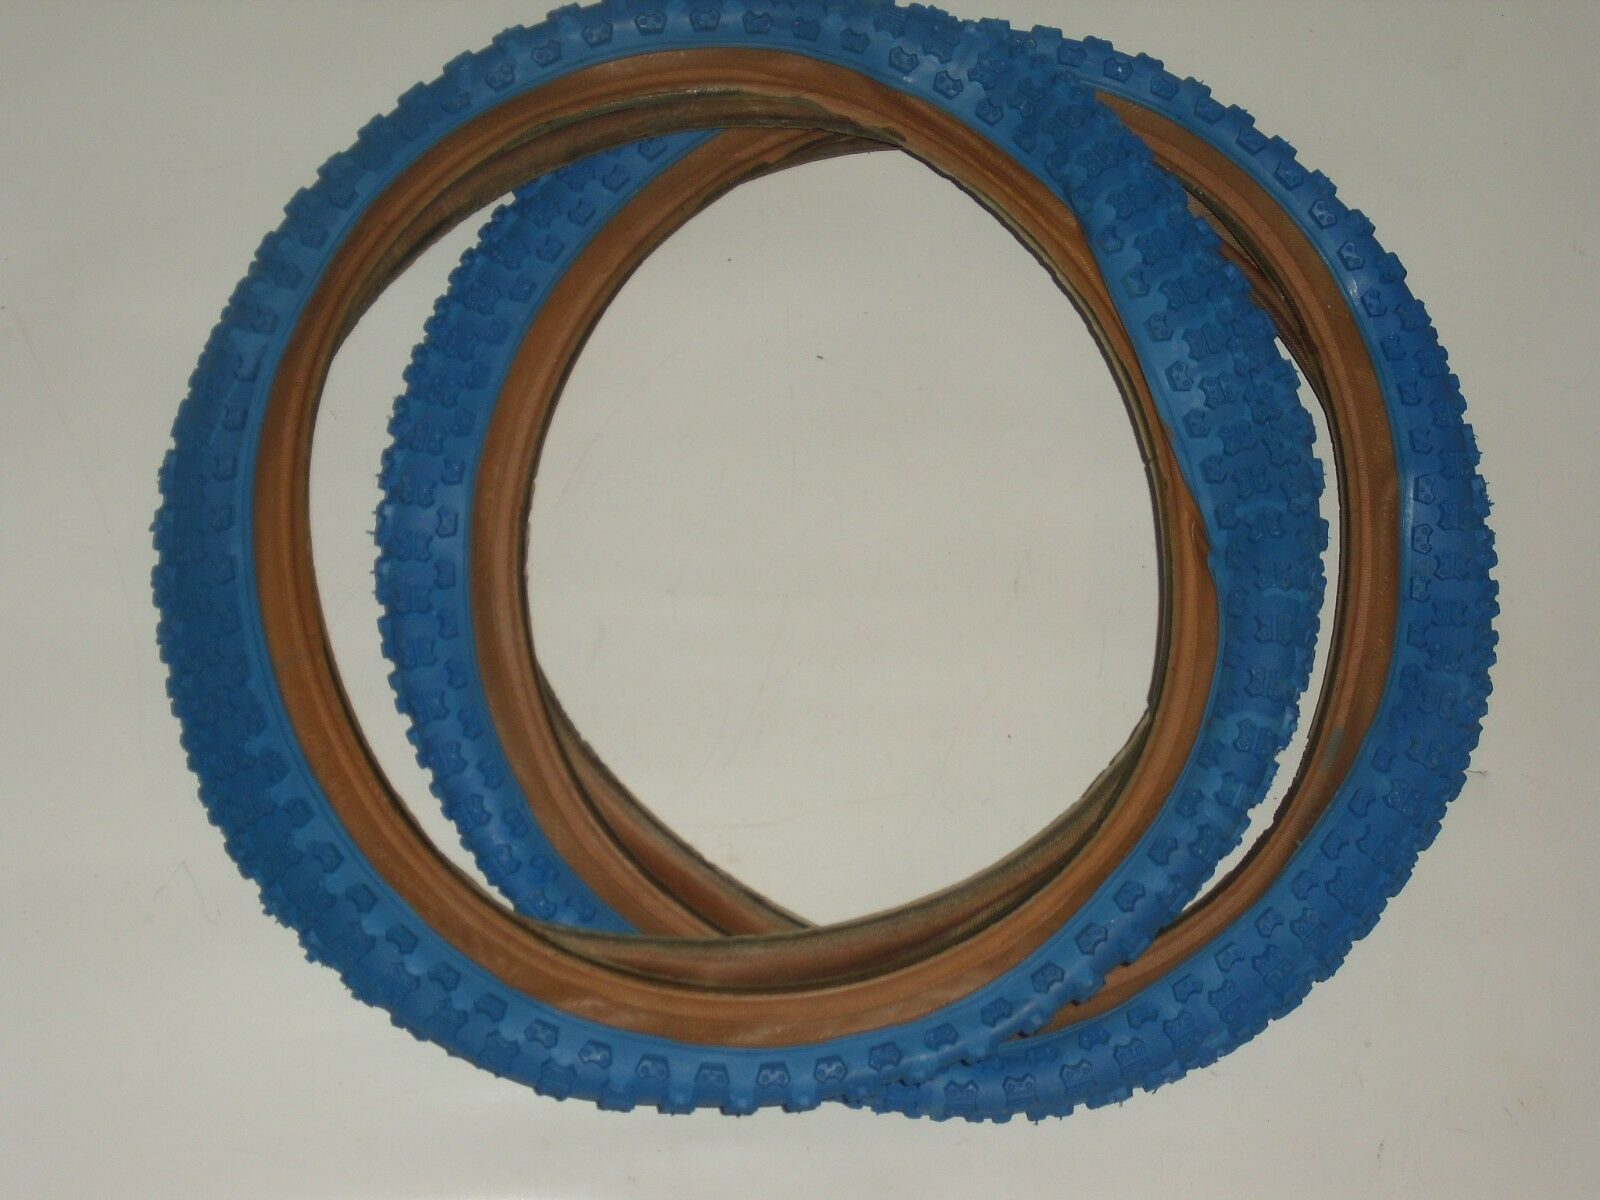 Old School  nos Cheng Shin 16 X  1.75 bluee comp 3 tires pit bmx bike pair set  large selection